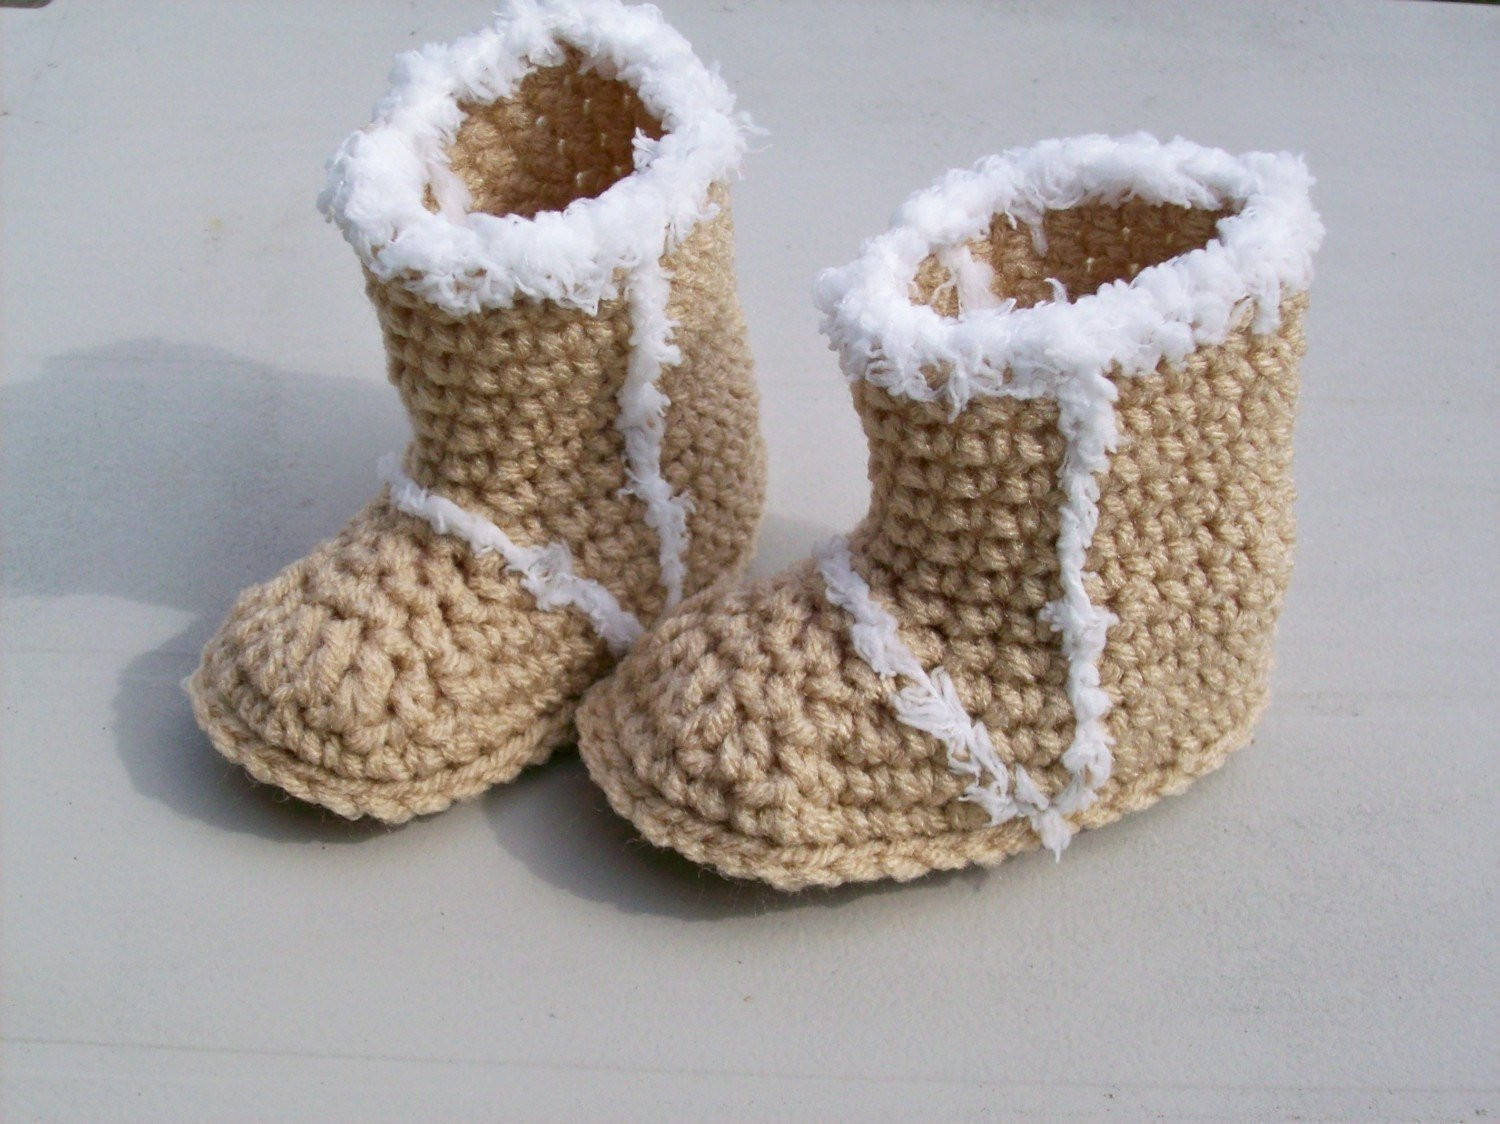 Lovely Ugg Style Crochet Pattern Crochet Ugg Boots Of Beautiful 42 Ideas Crochet Ugg Boots